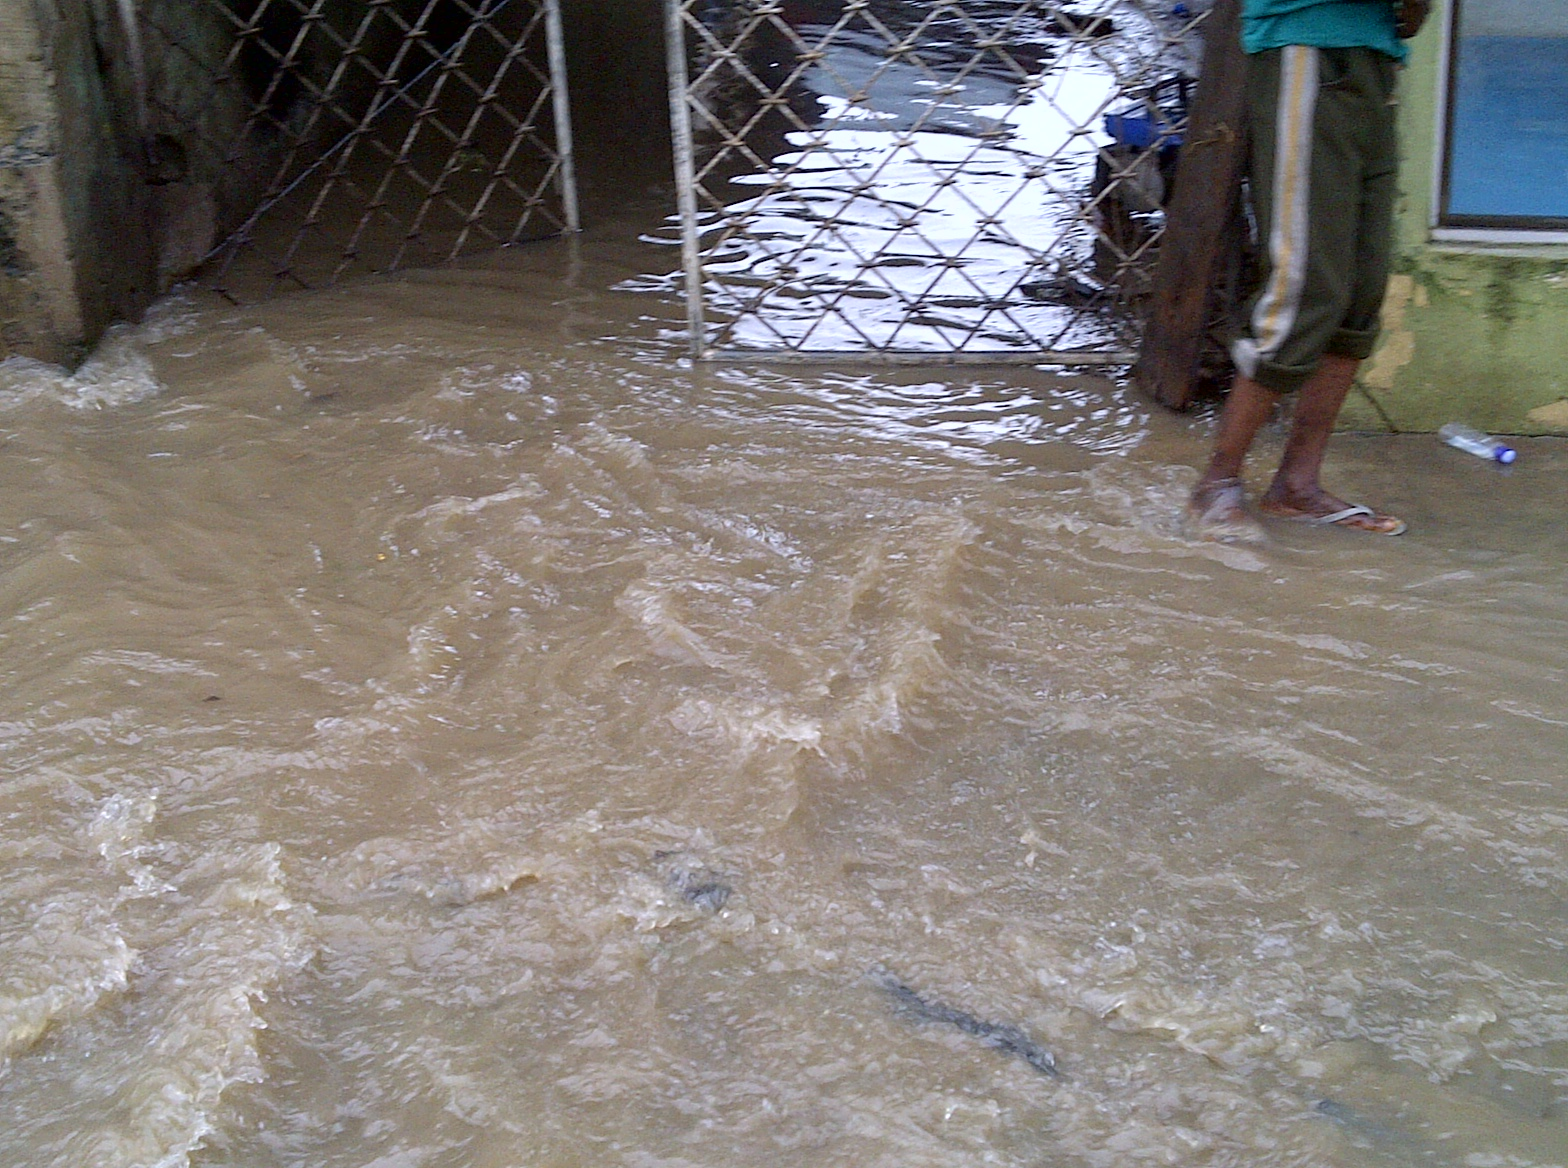 Overnight downpour causes flood and traffic gridlock in Lagos